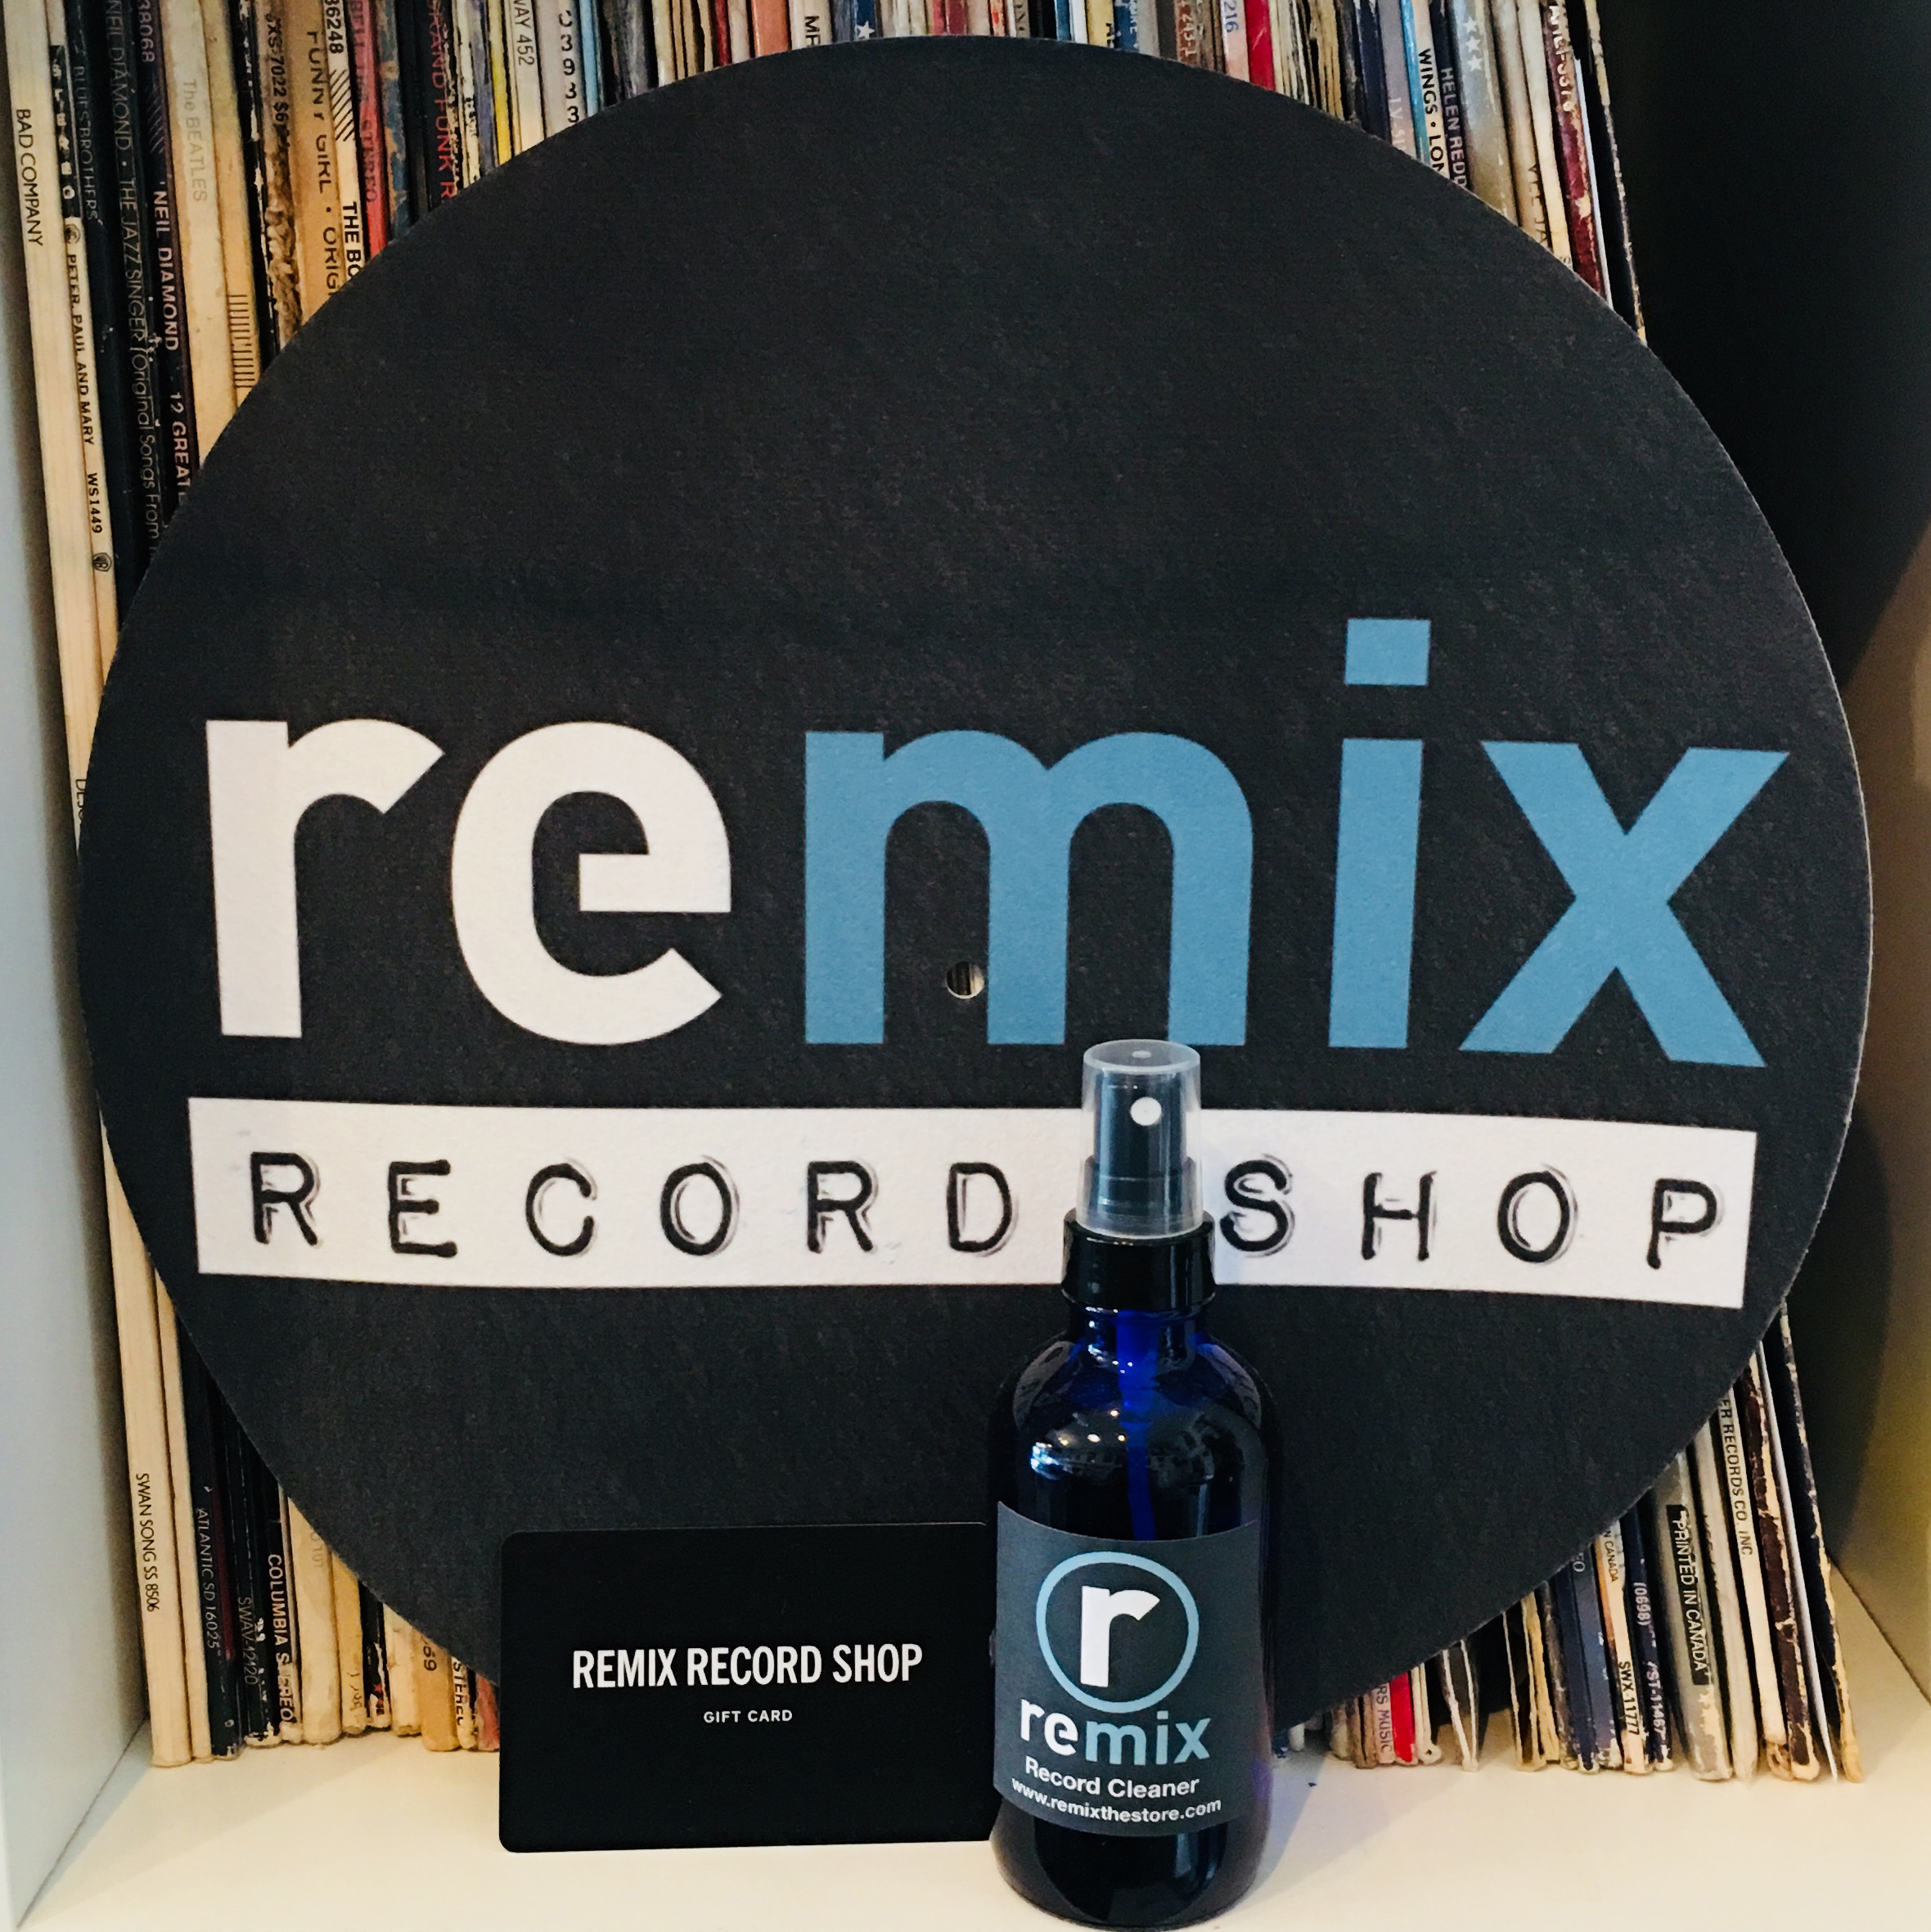 REMIX RECORD SHOP Stocking Stuffers  Need some stocking stuffers for Christmas? We can help! Give the gift of music with a REMIX RECORD SHOP gift card. REMIX Record Cleaner is always a great gift... after all, a clean record is a happy record. Finally, we have a variety of slipmats to make your turntable look cool! Come swing by the shop! We are open Monday - Saturday 11a - 7p.